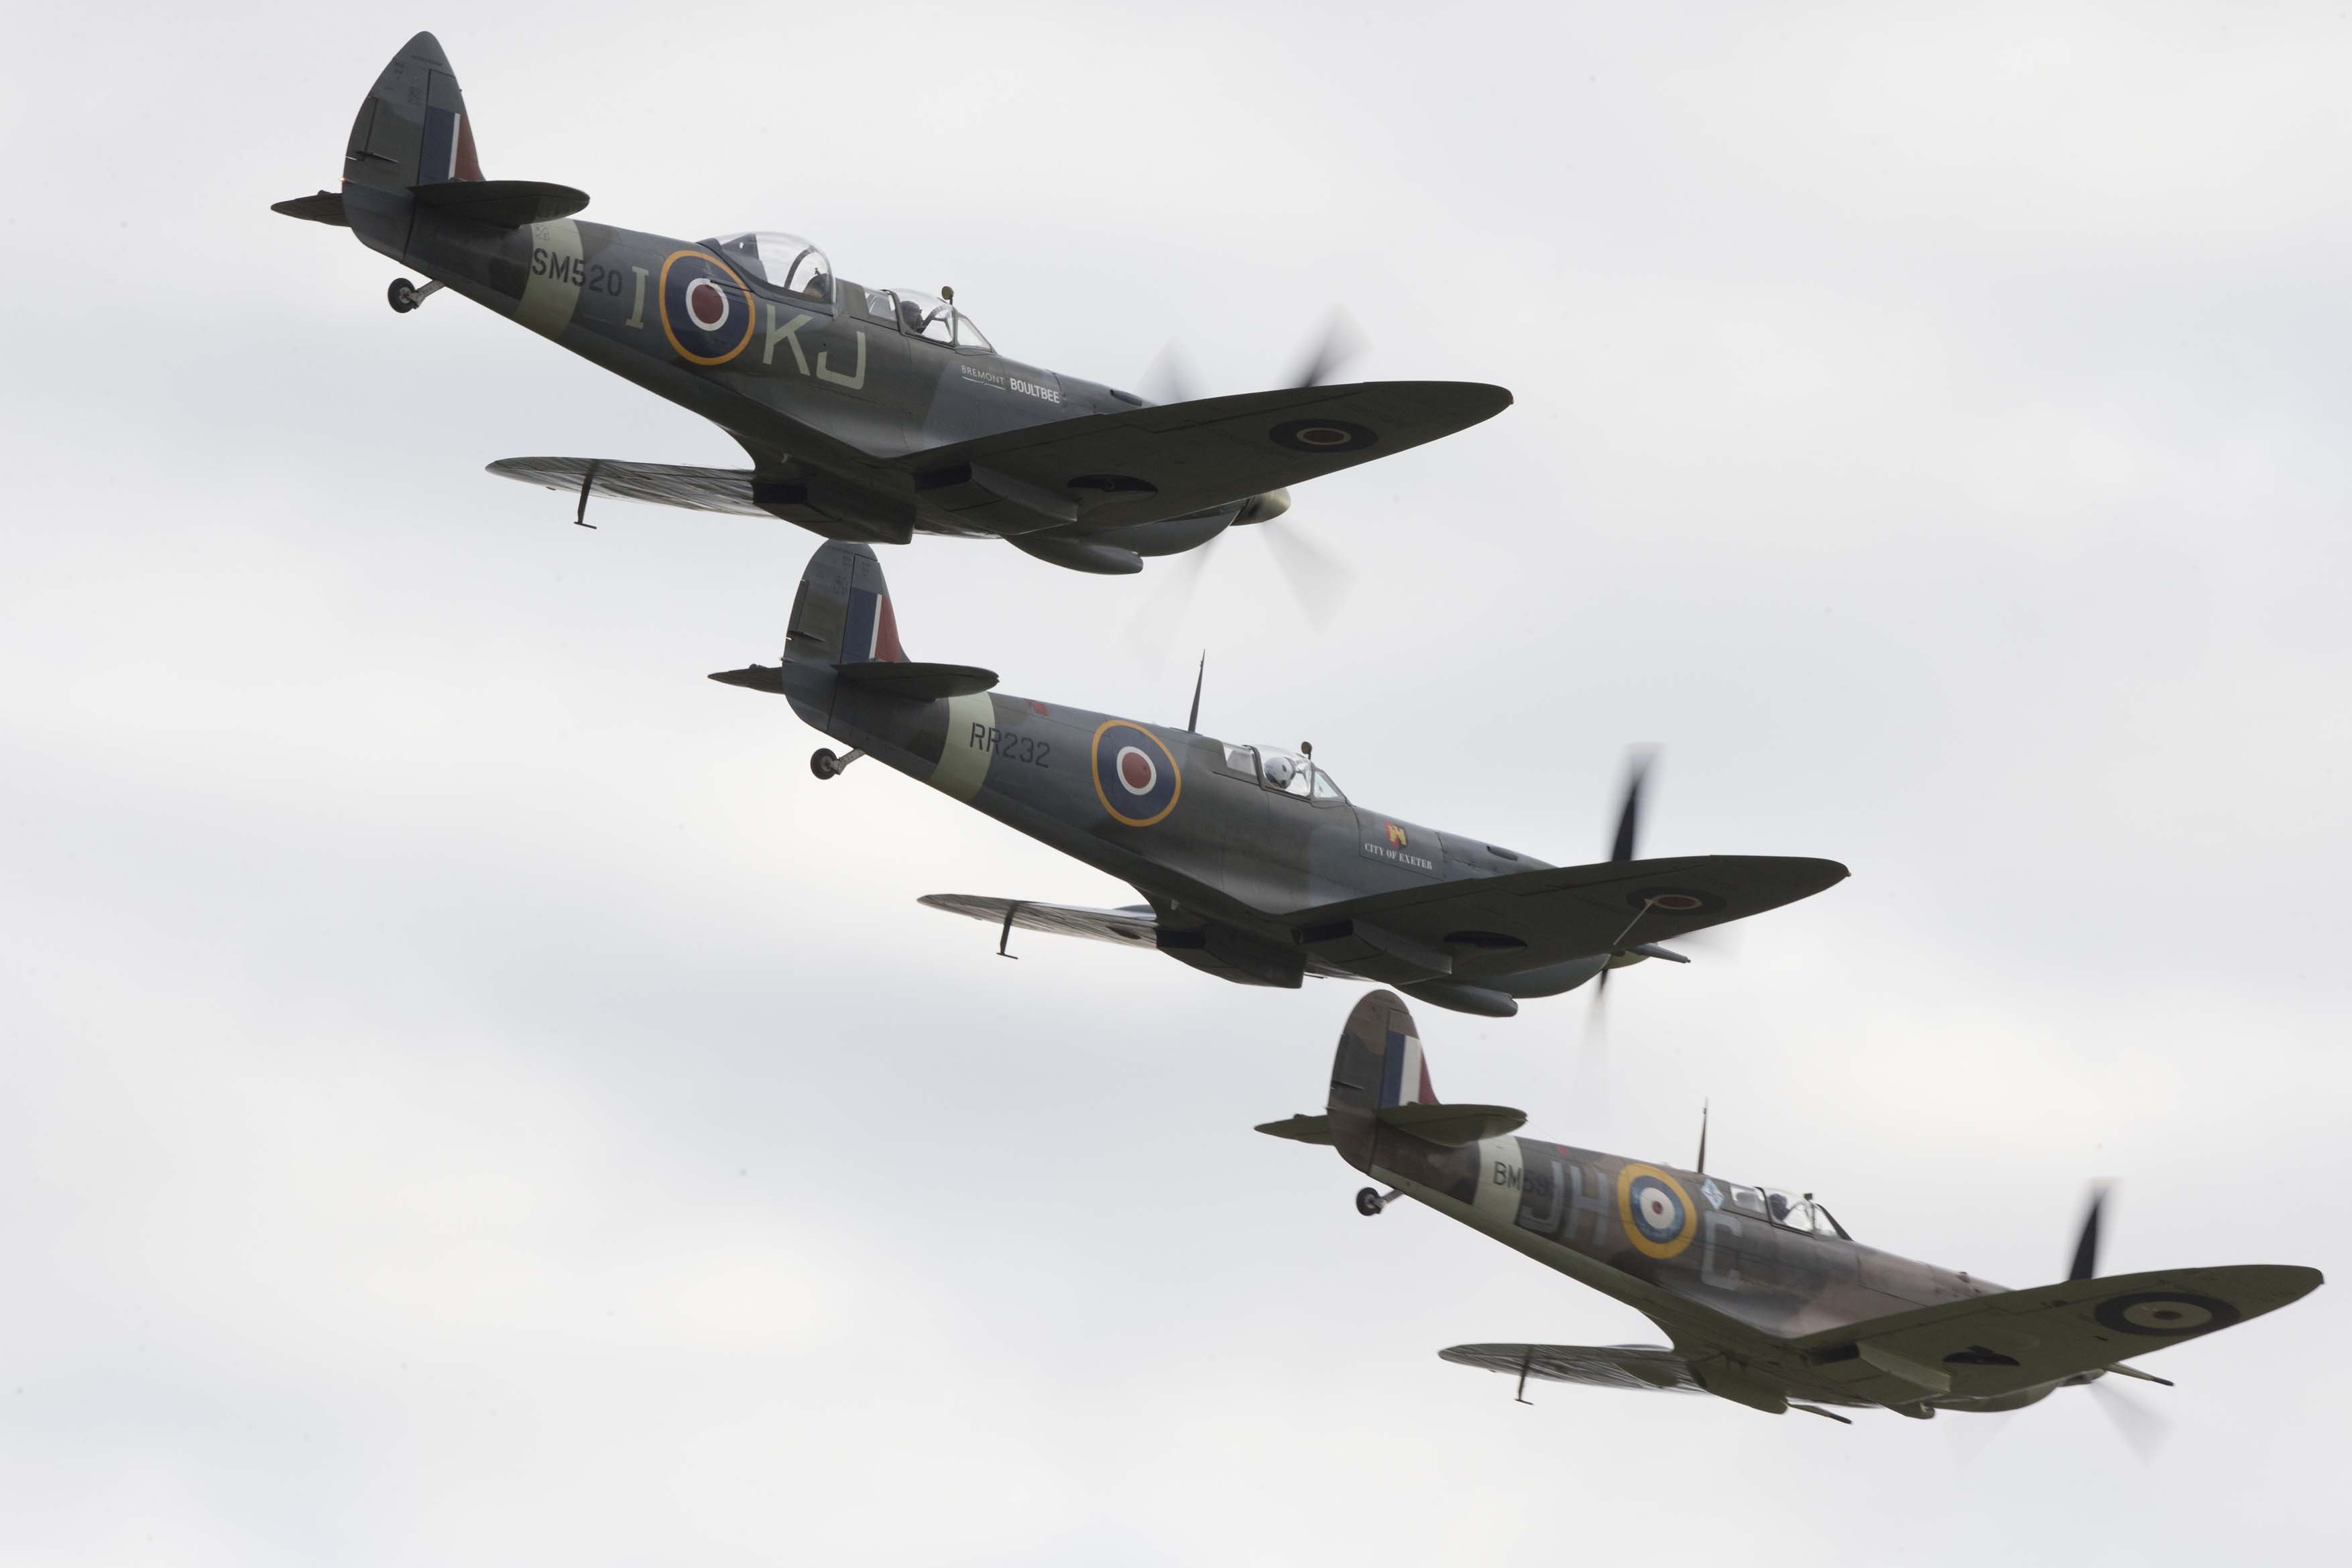 Three Spitfires flying at Battle of Britain Airshow